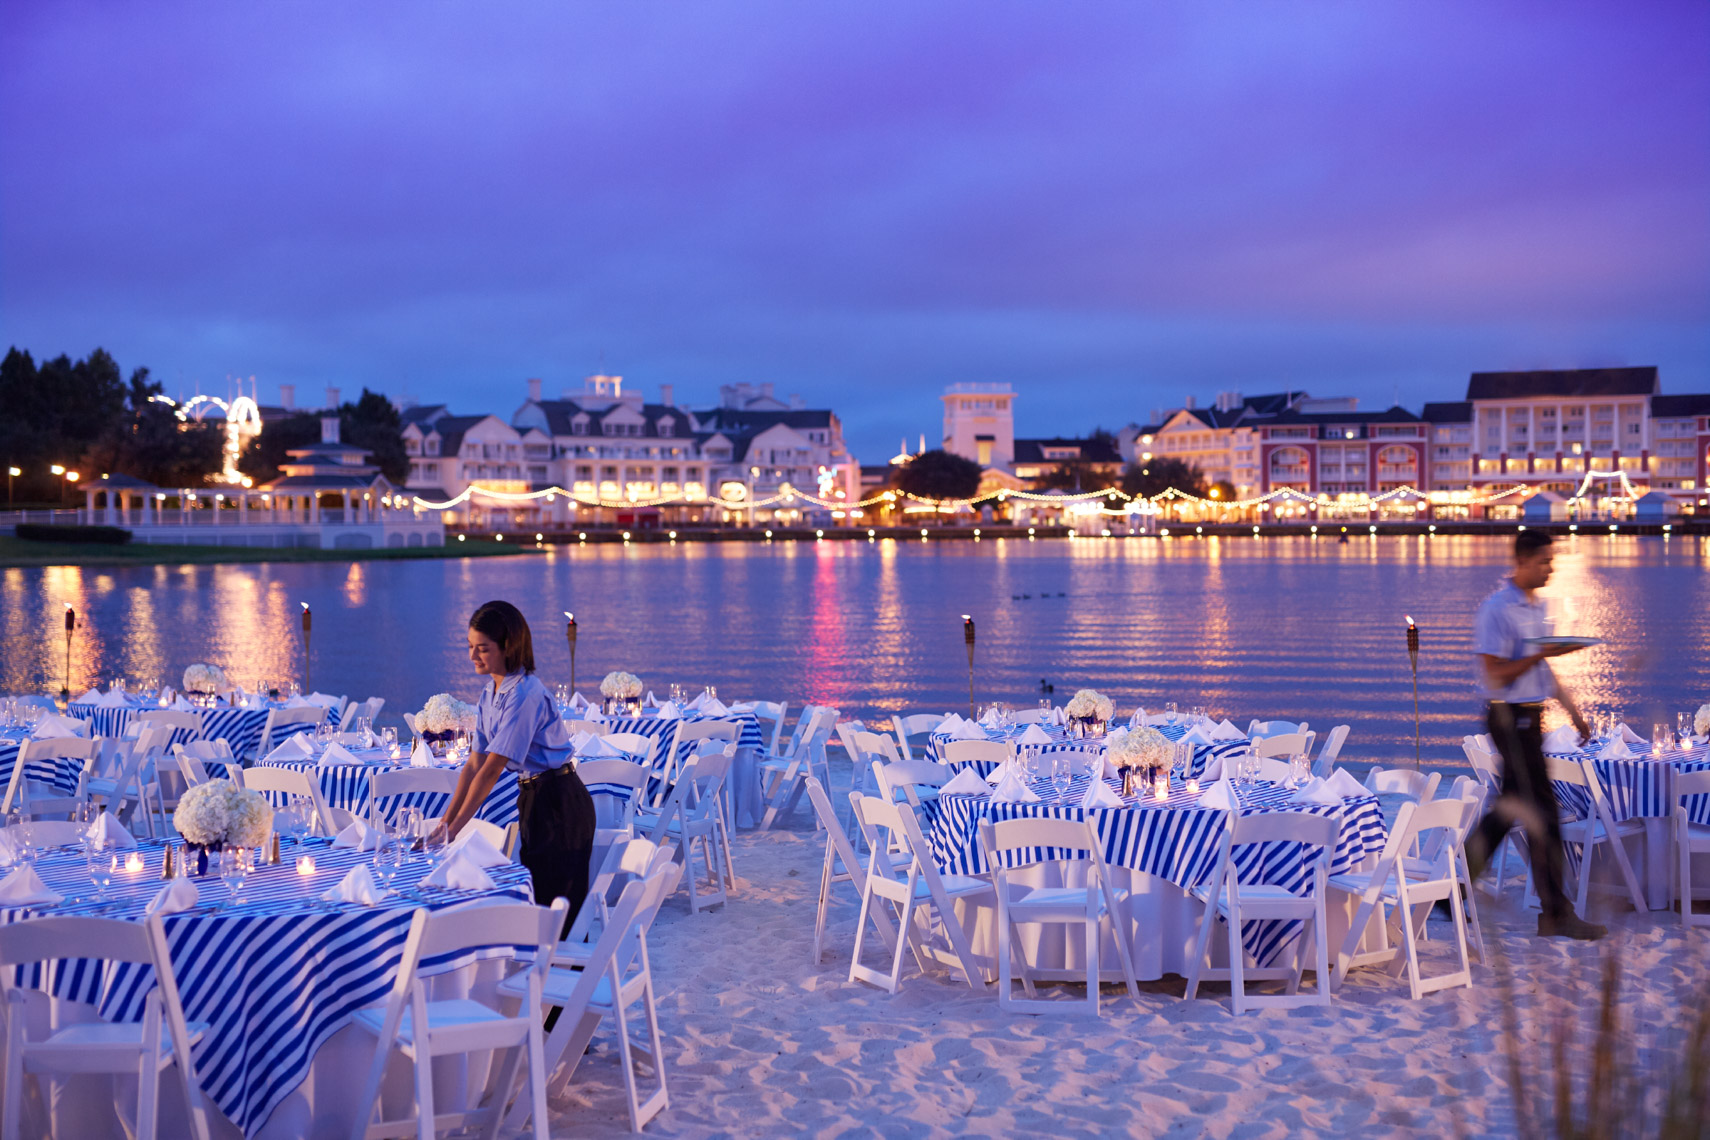 Servers preparing tables for outdoor dining on the beach at sunset with reflections on water